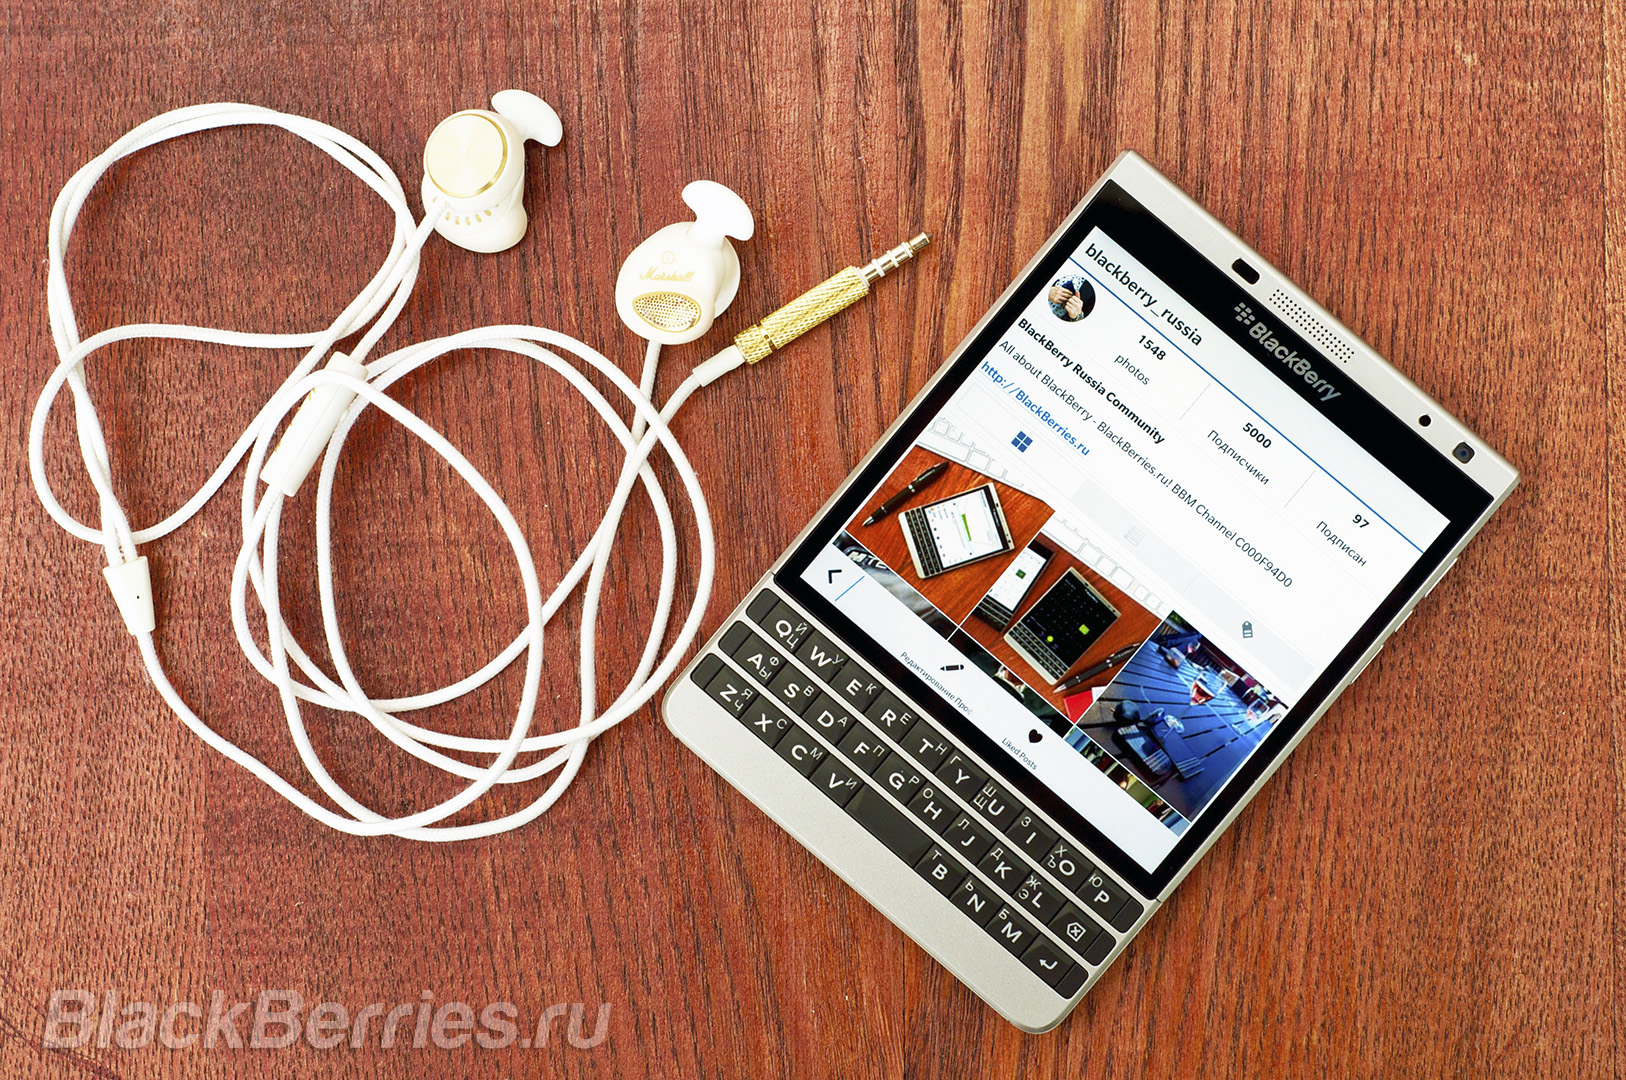 BlackBerry-Passport-Silver-Apps-16-08-5